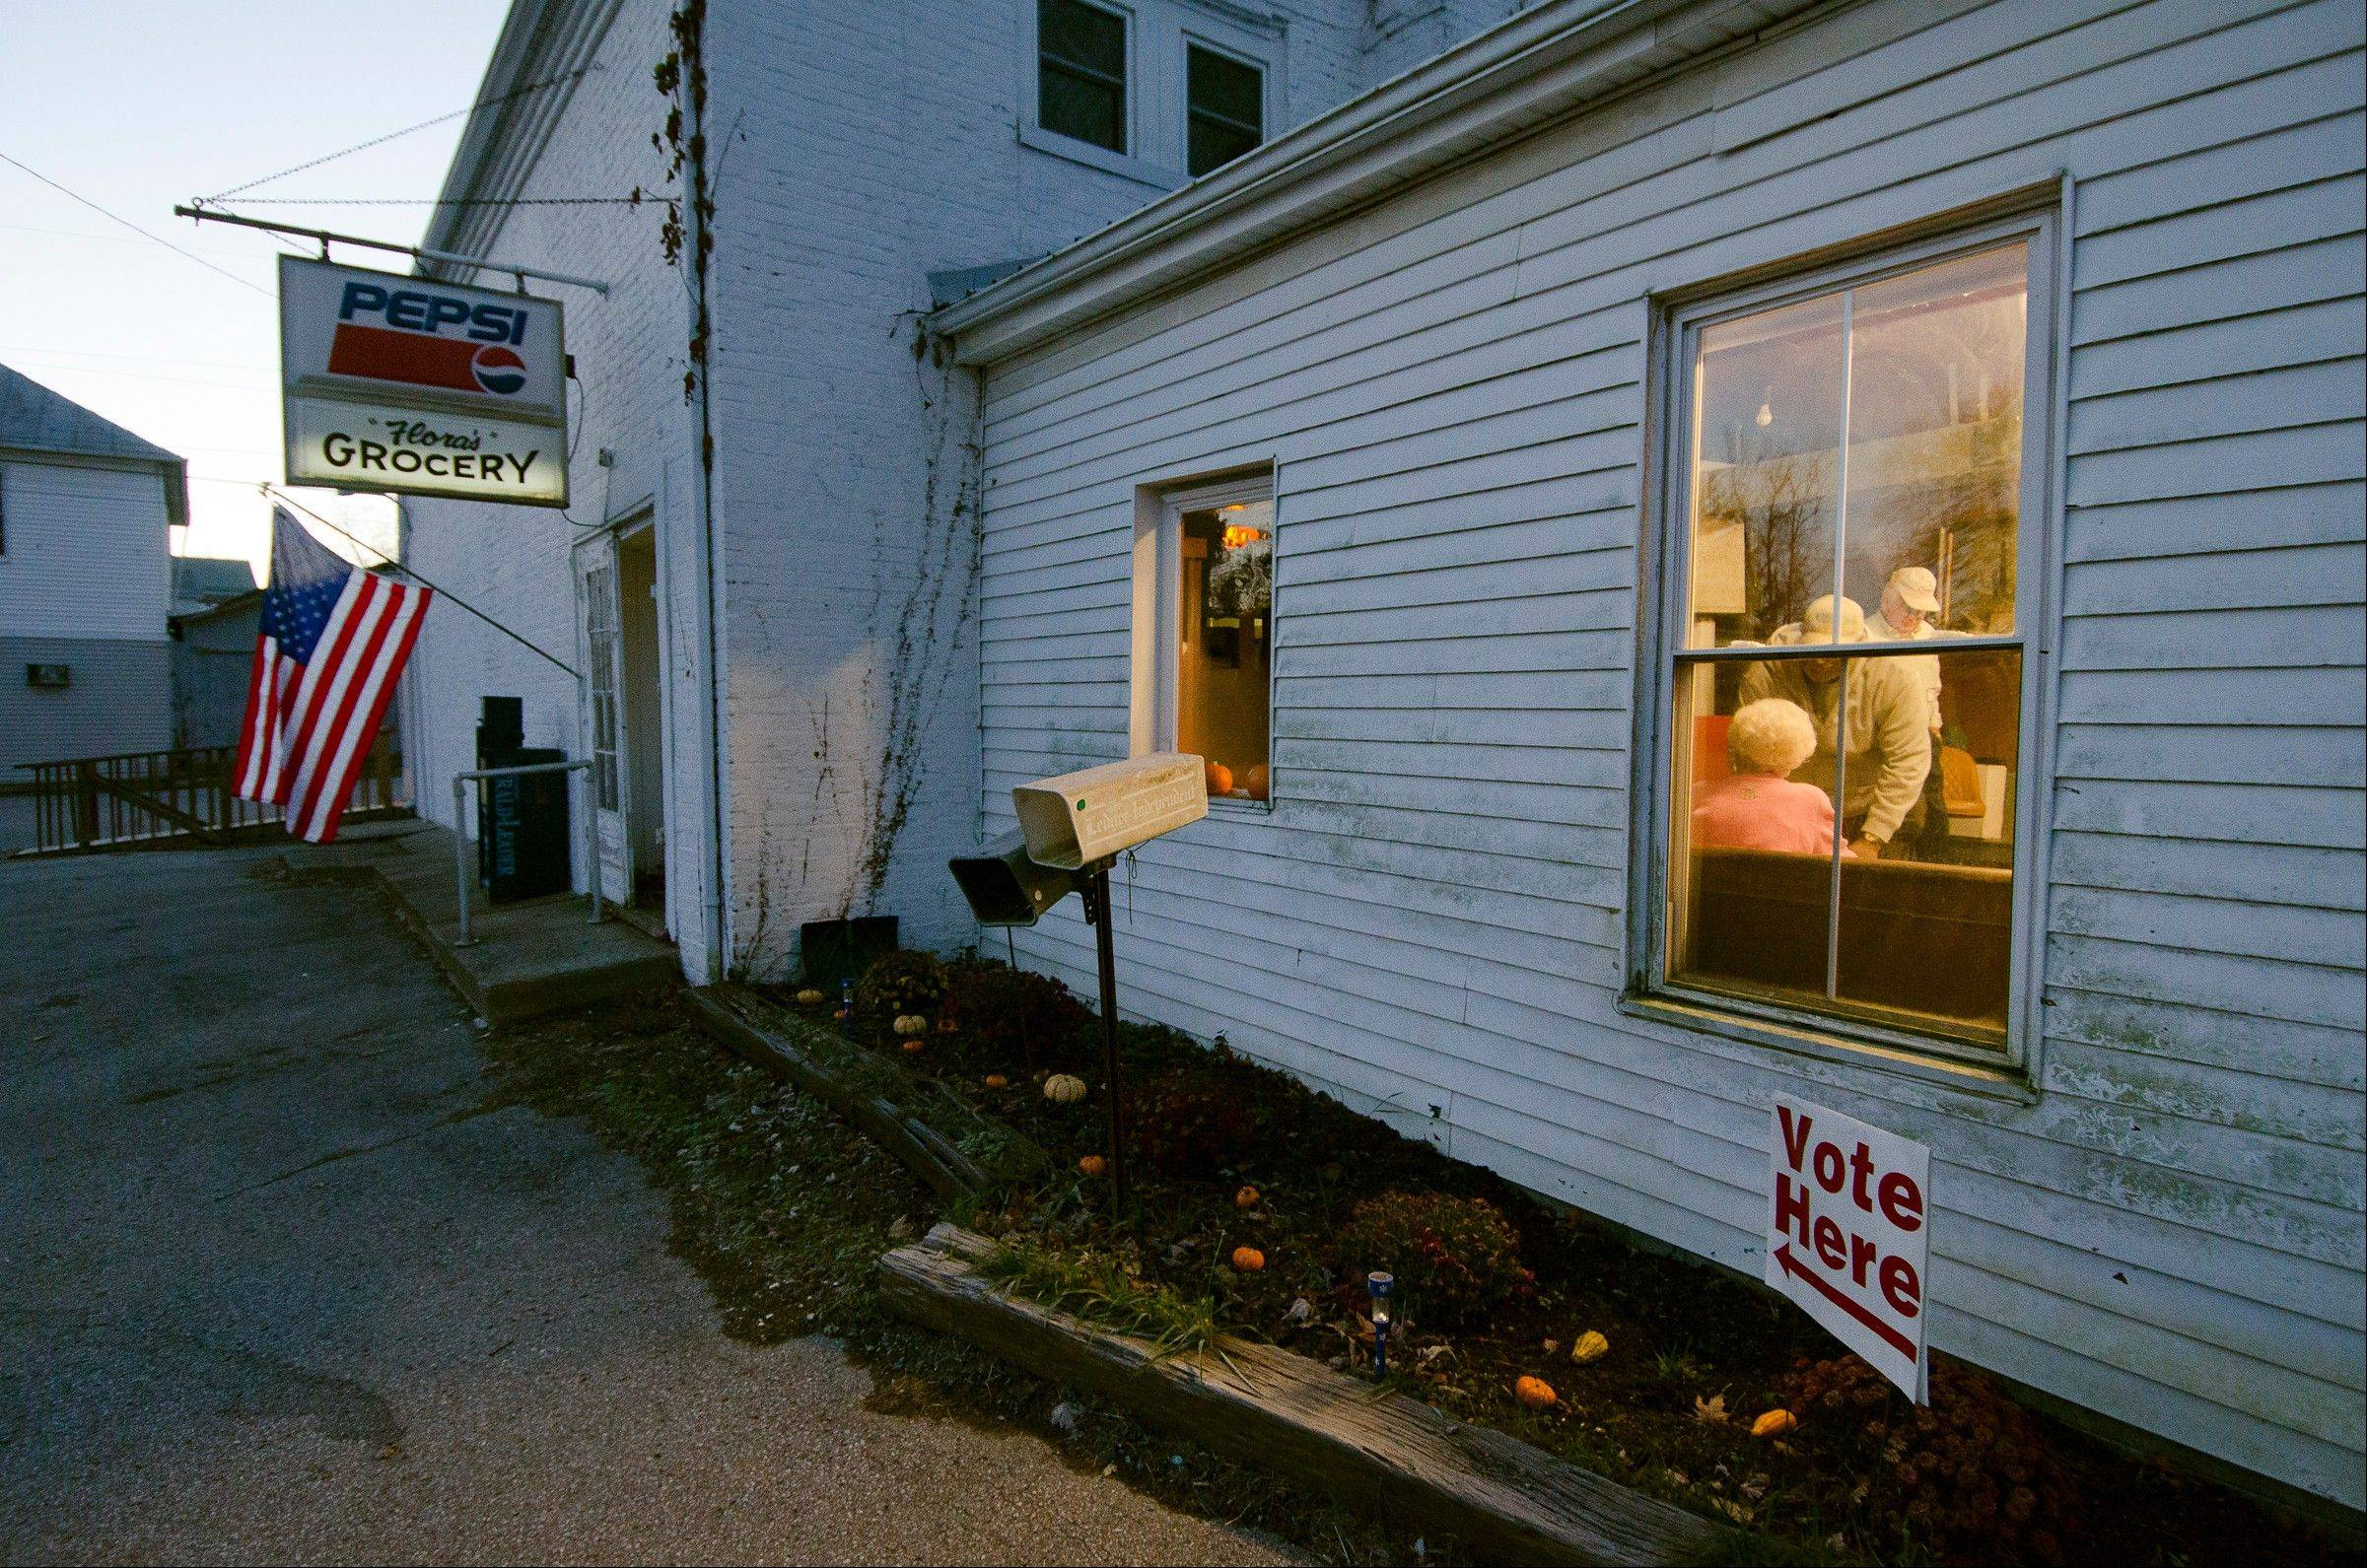 People sign in to vote Tuesday, Nov. 6, 2012 at the Elizaville precinct in Elizaville, Ky. The precinct is located in a general store built in 1821 and has 524 registered voters.